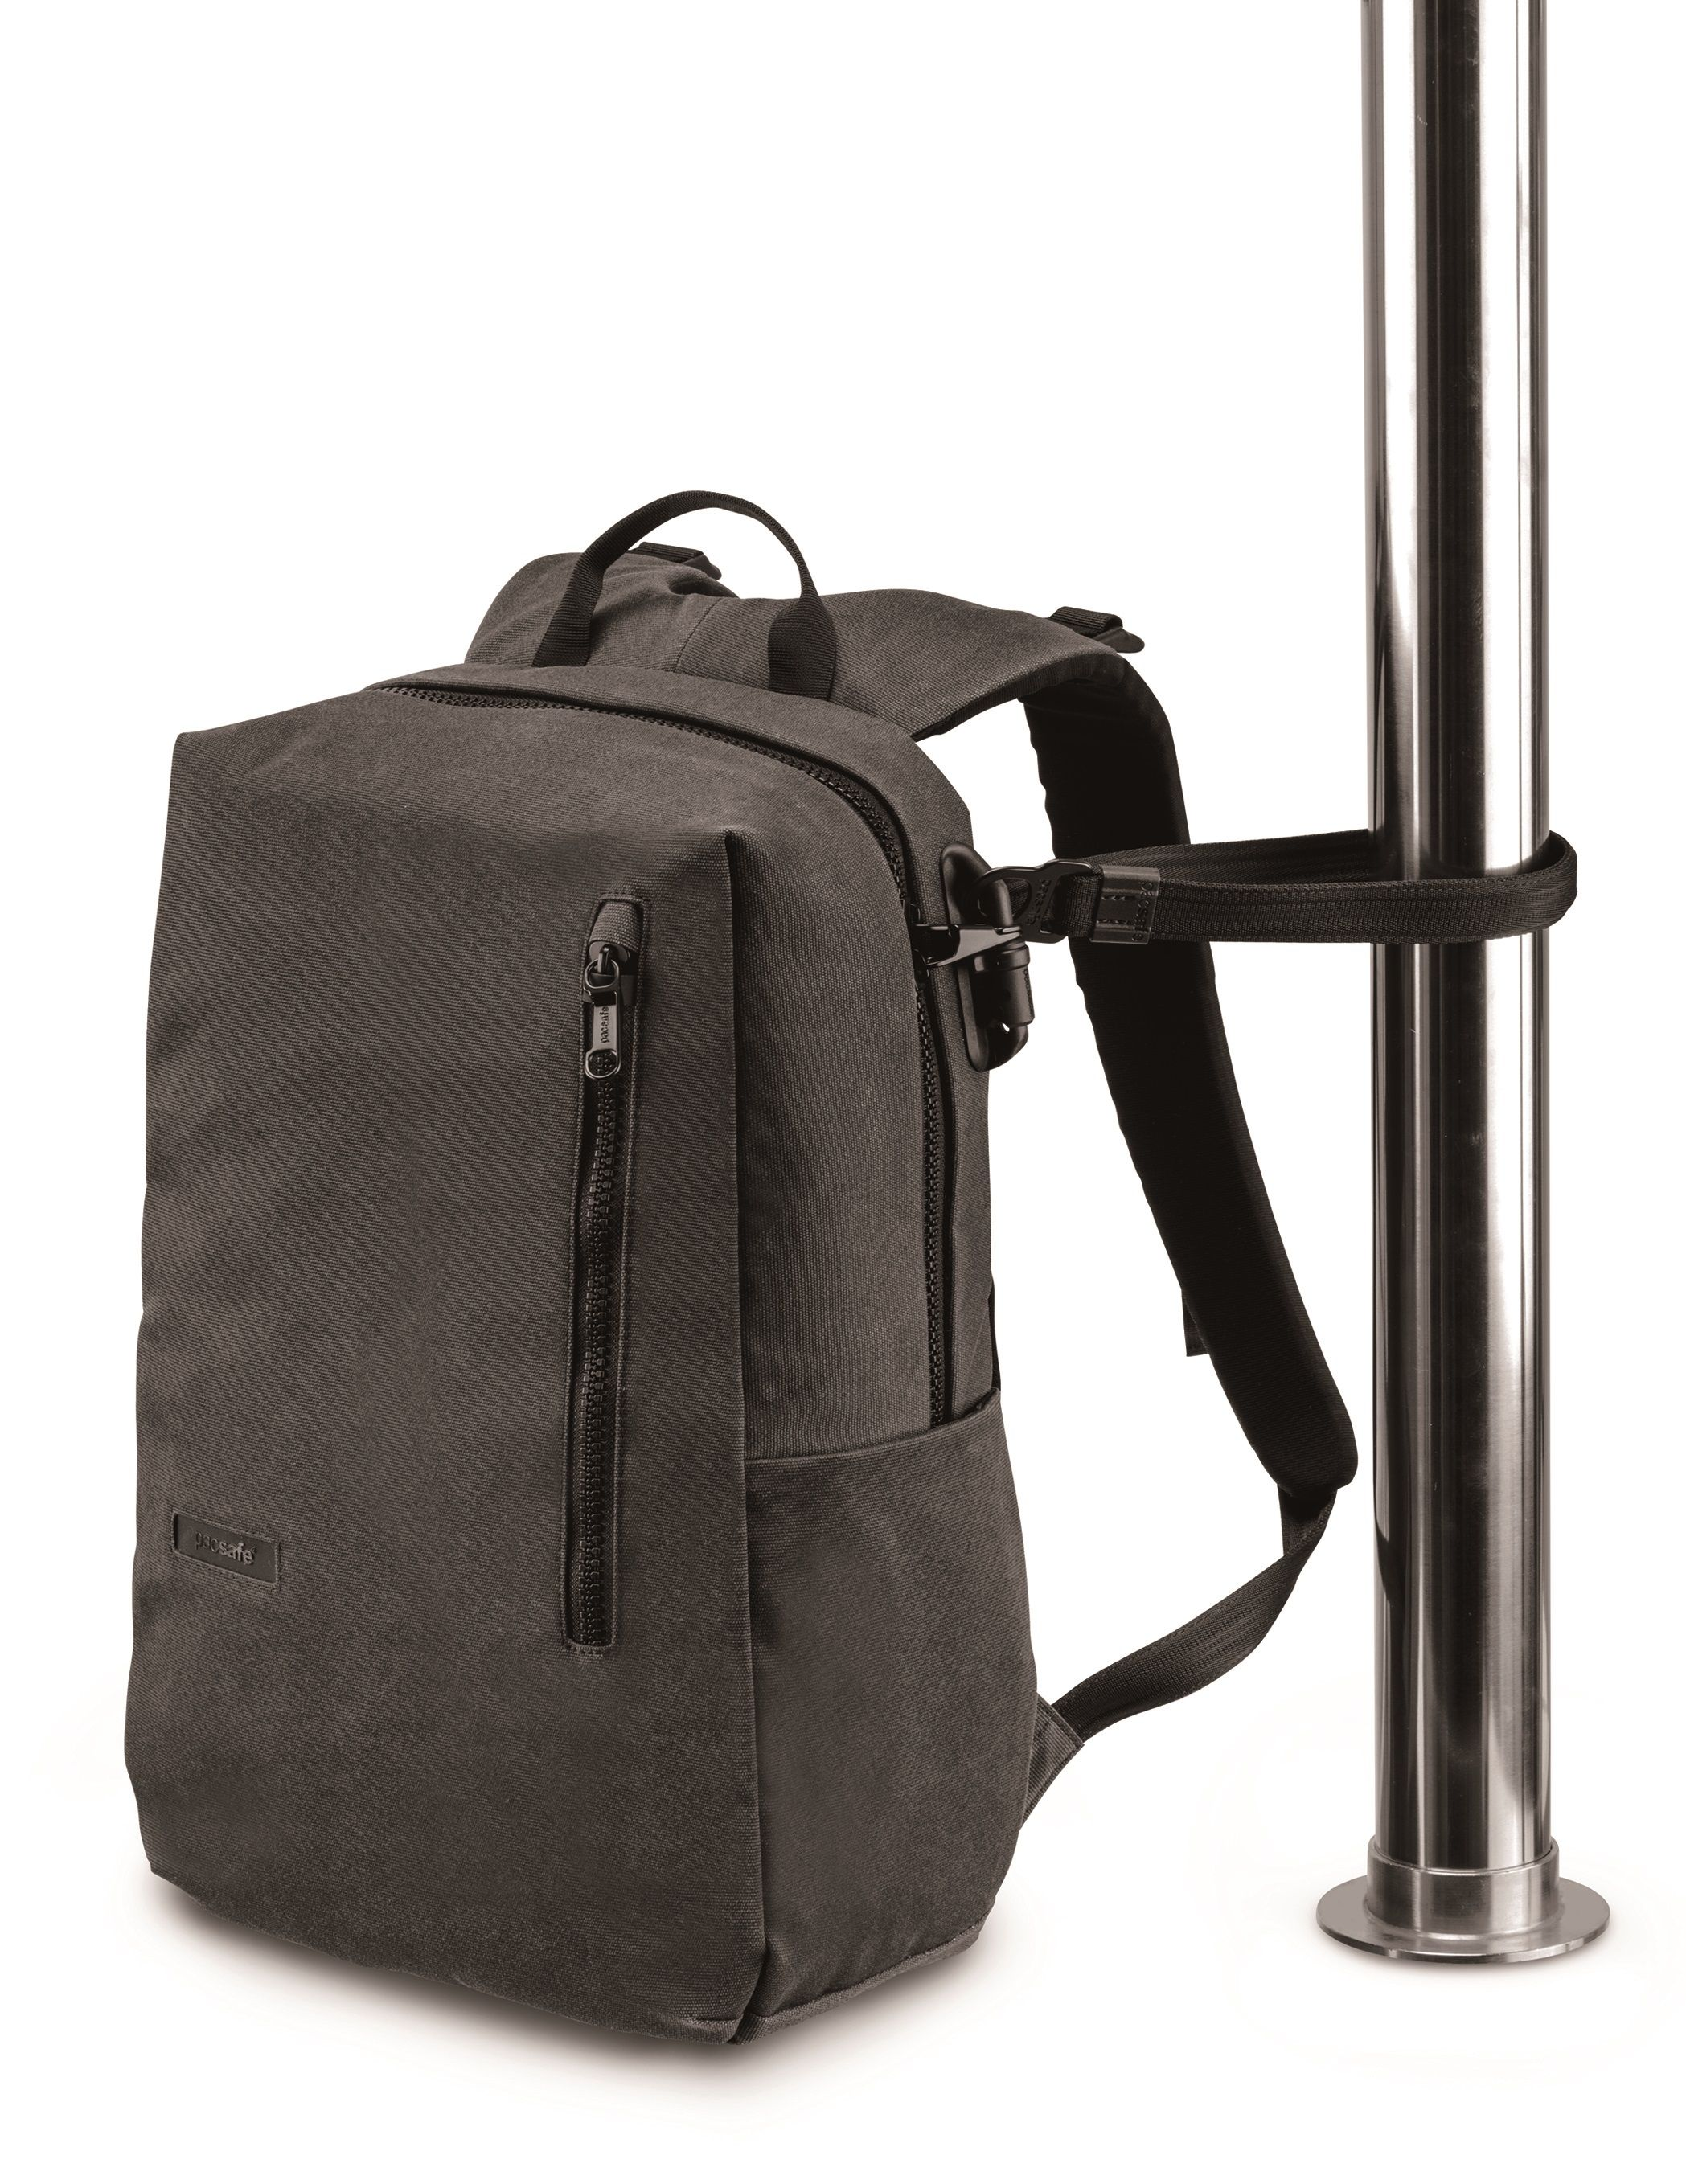 dbb5aae53f Intasafe Z500 Anti-Theft Backpack- Stay connected and ahead of the game-  Fits